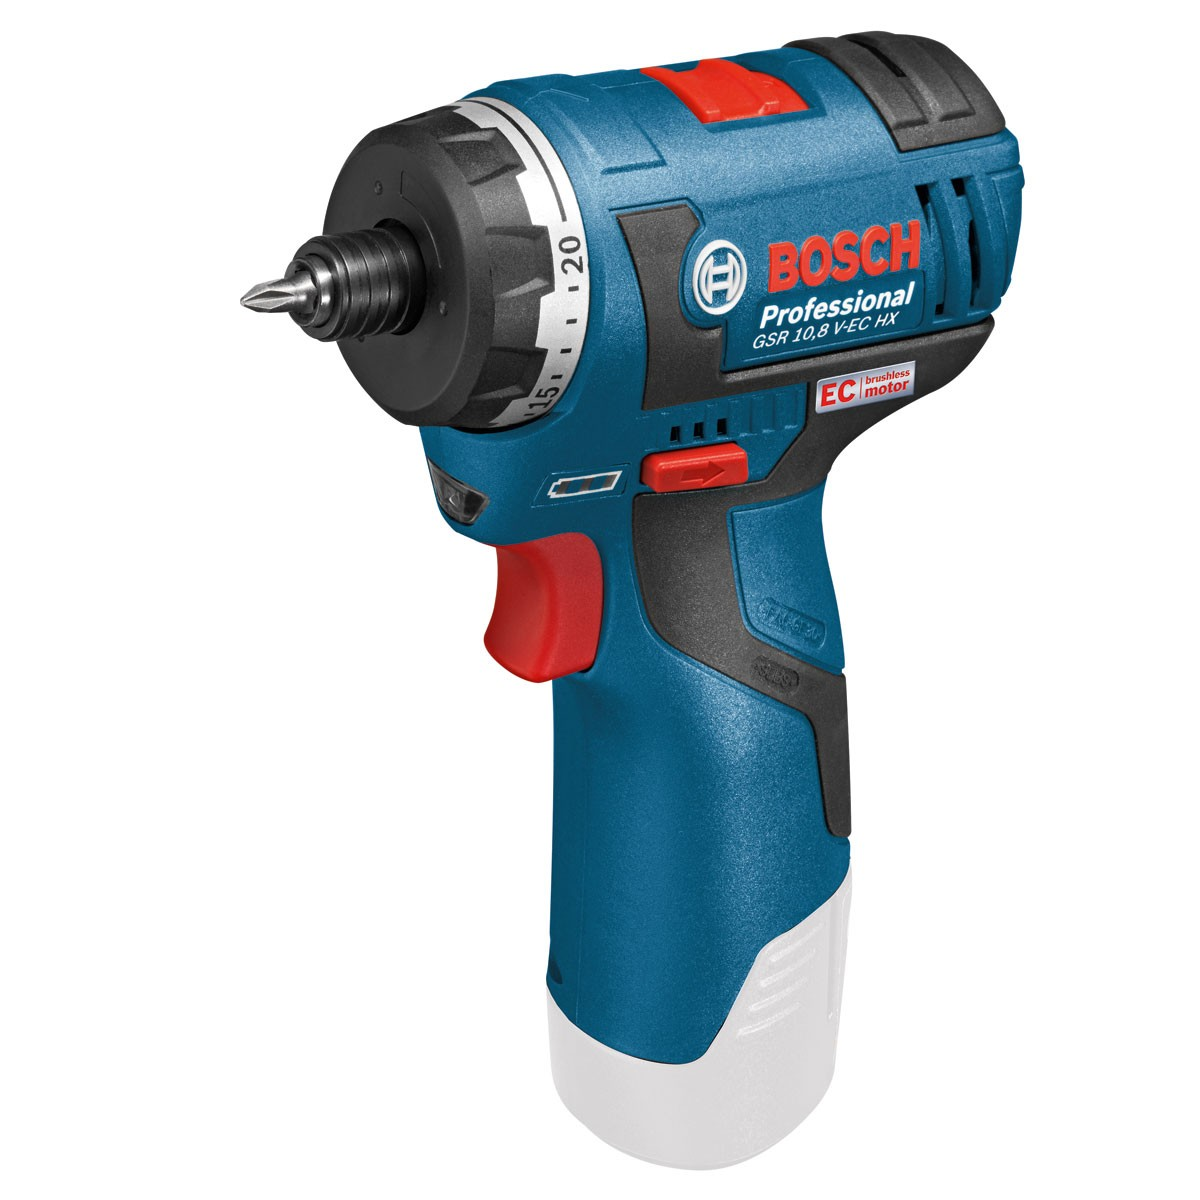 bosch gsr 10 8 v ec hx professional cordless hex screwdriver body only powertool world. Black Bedroom Furniture Sets. Home Design Ideas